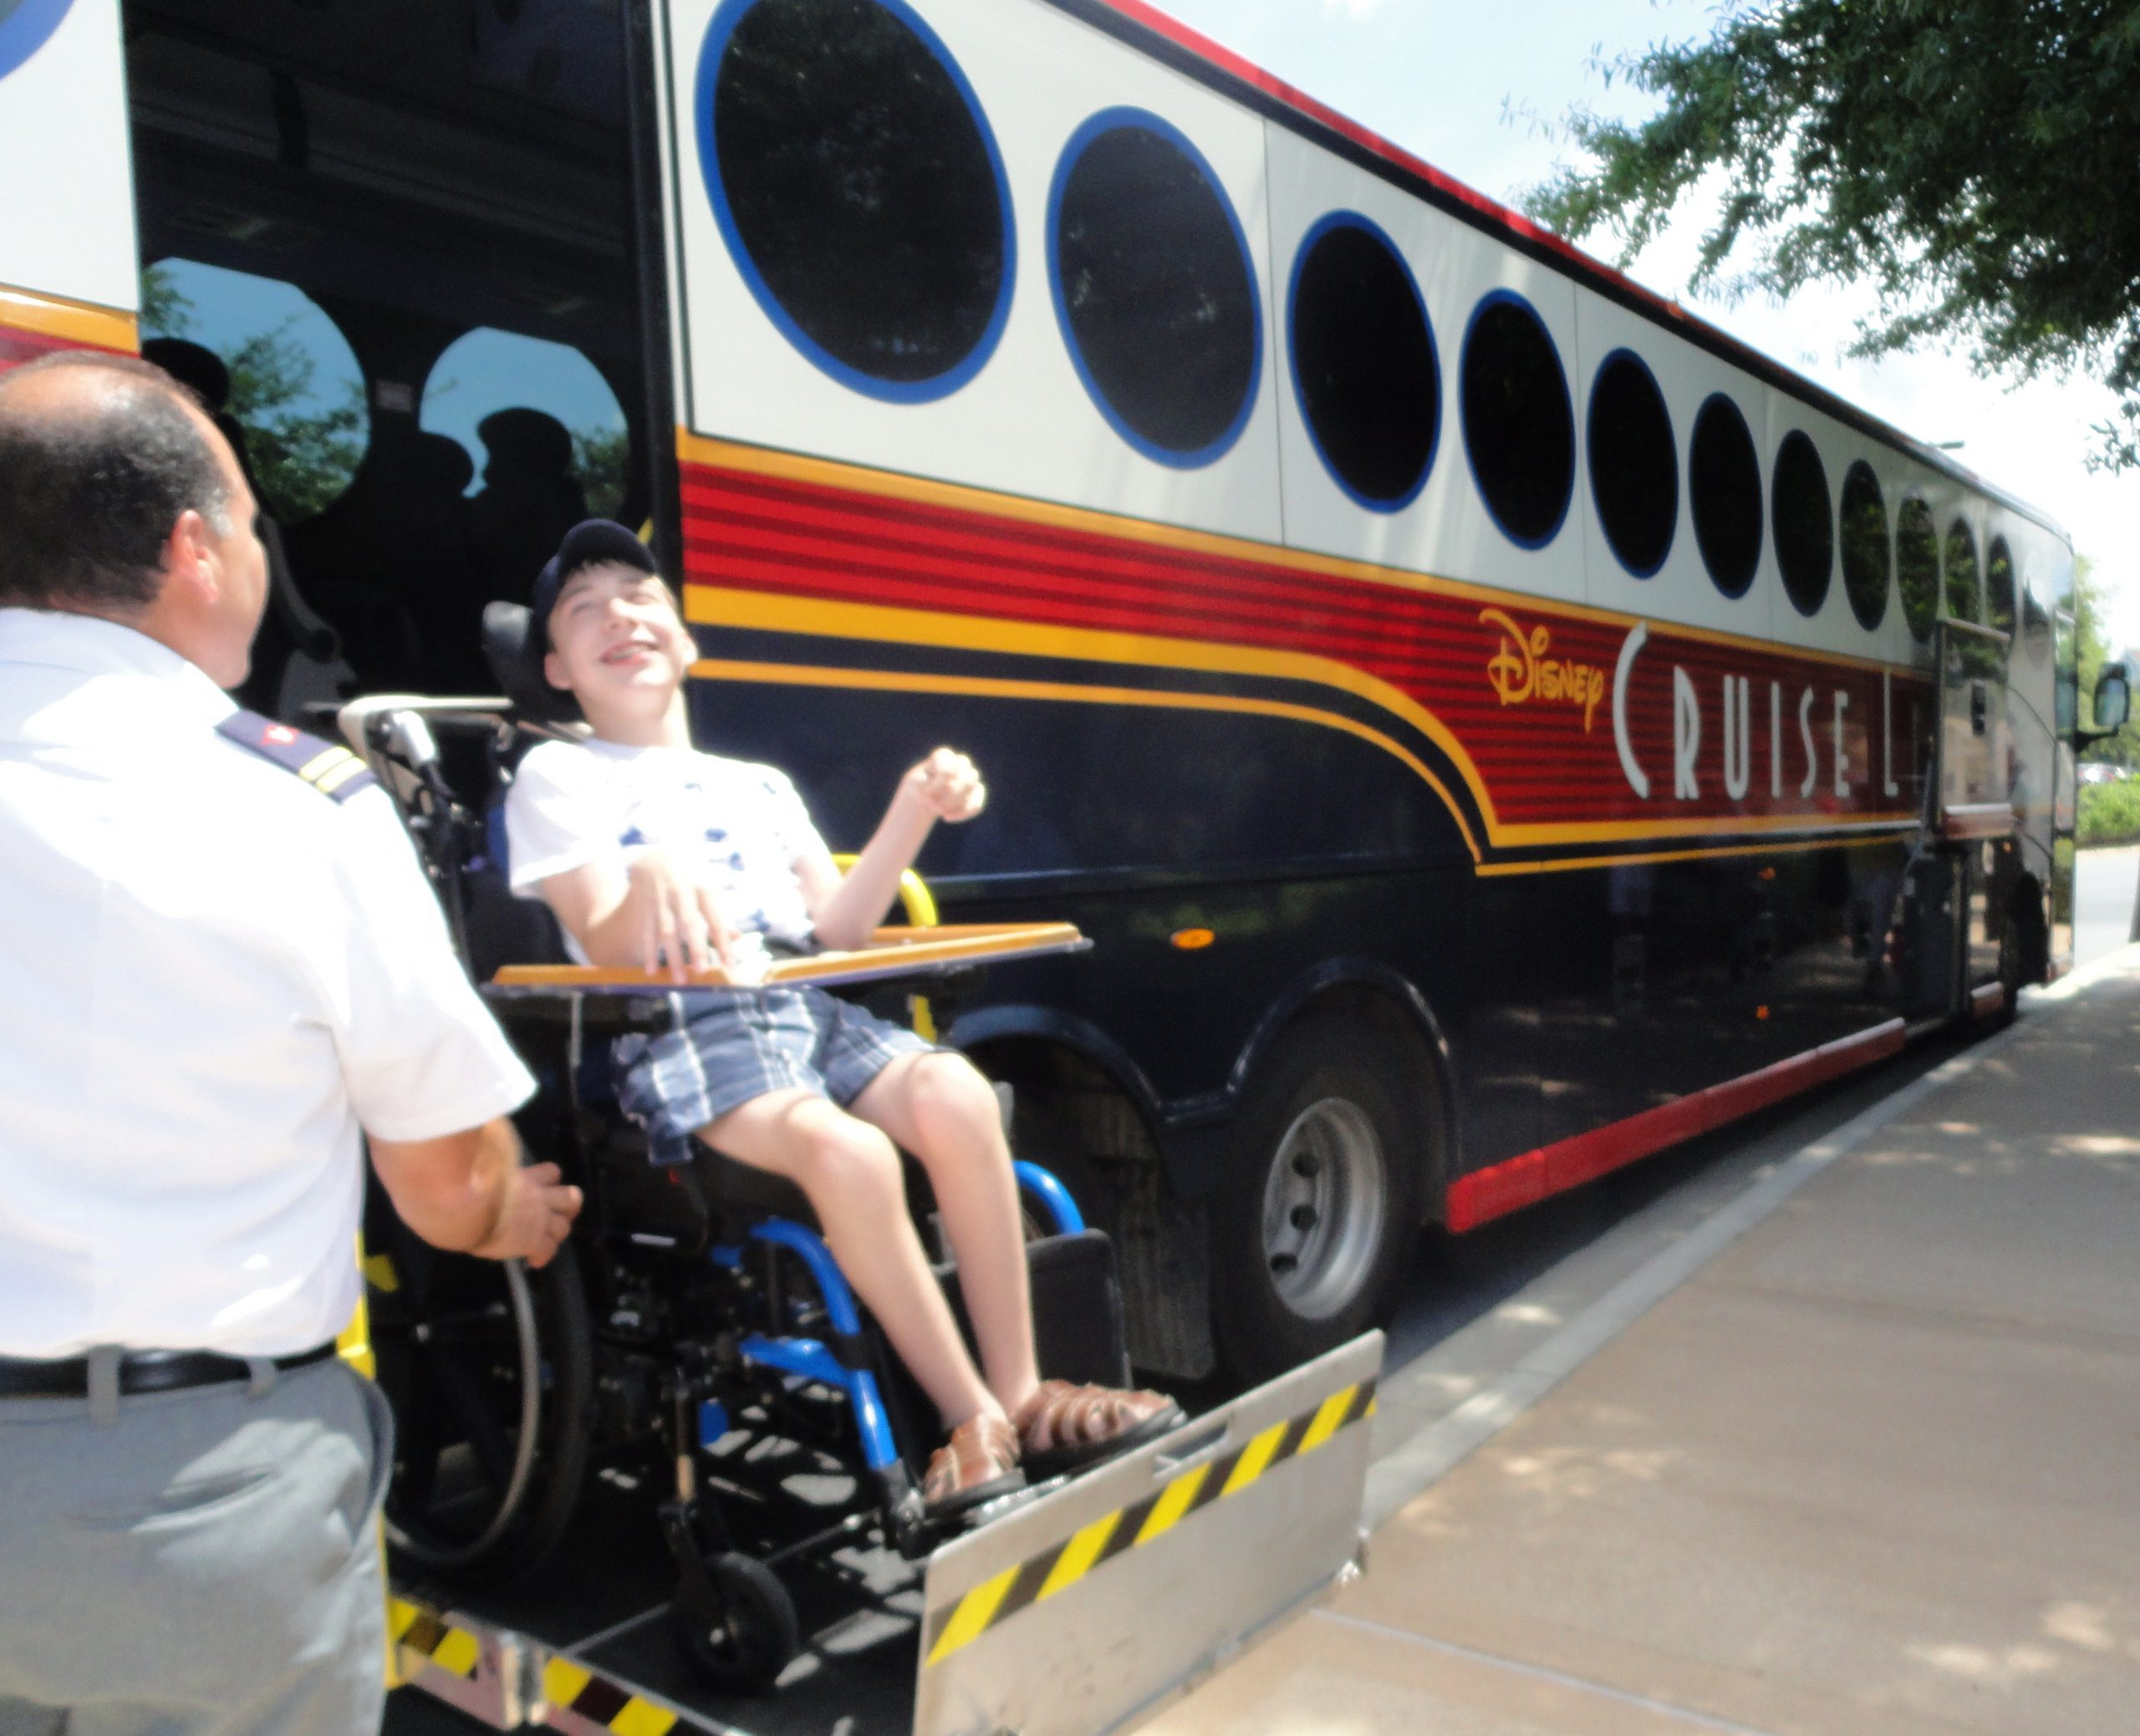 wheelchair express shower chairs walmart disney on wheels s magical at walt world after about a forty minute ride to and arriving your resort the process occurs in reverse driver will unbuckle